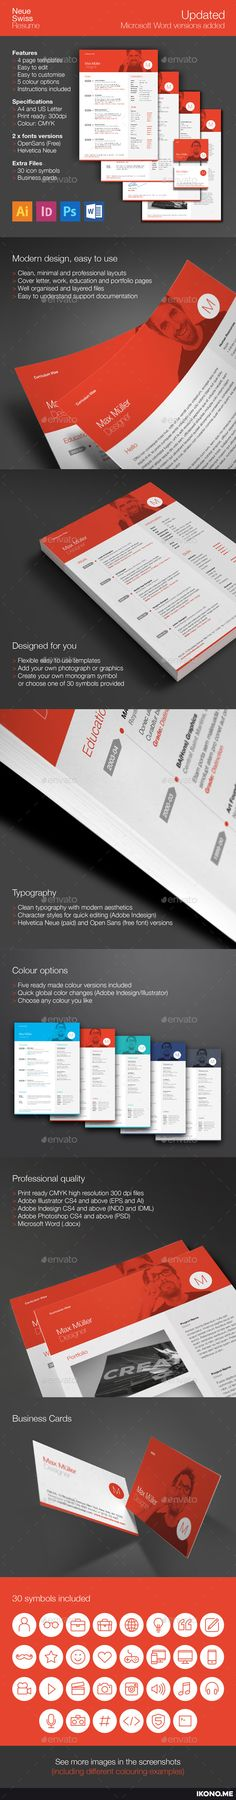 Calendars 2014 - 2015 Swiss Design Get the source files for download